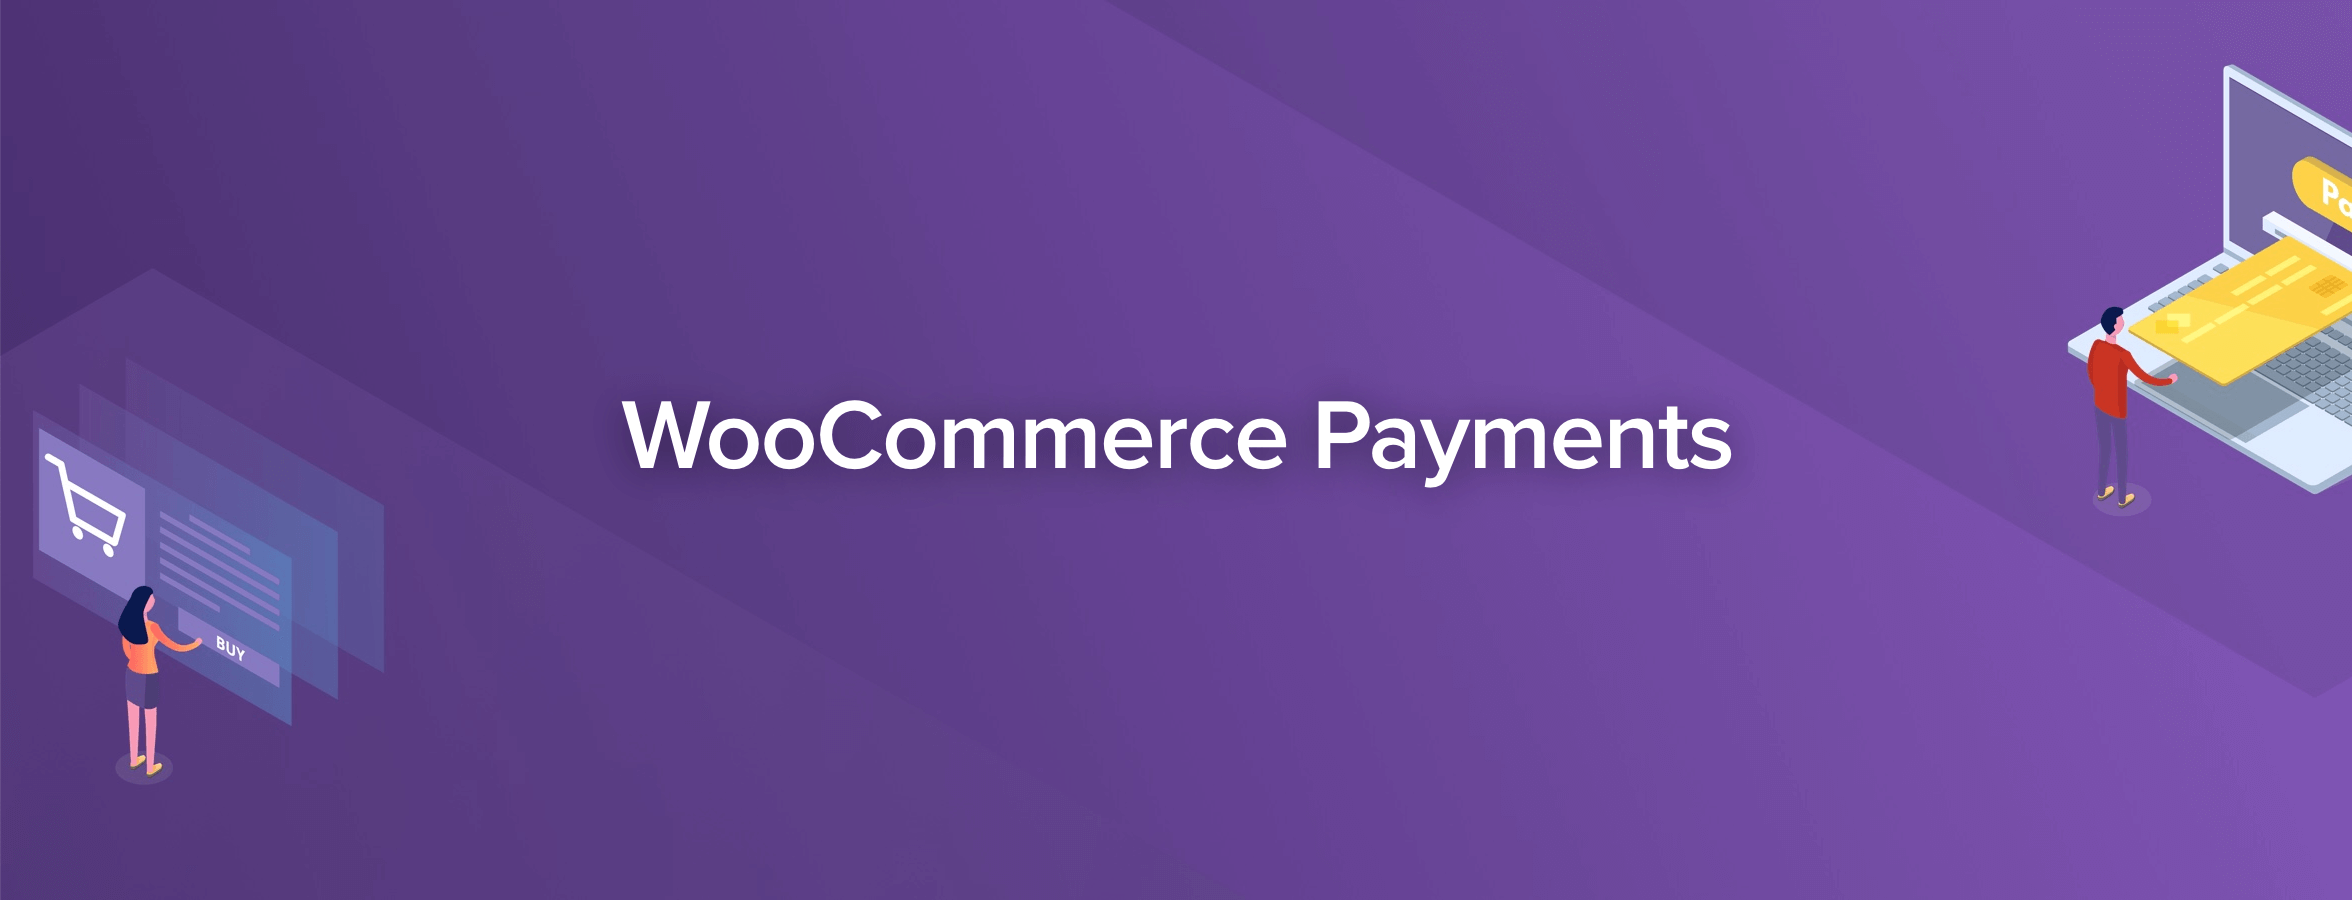 7-best-woocommerce-payment-gateways-and-processors-6 7 Best WooCommerce Payment Gateways and Processors